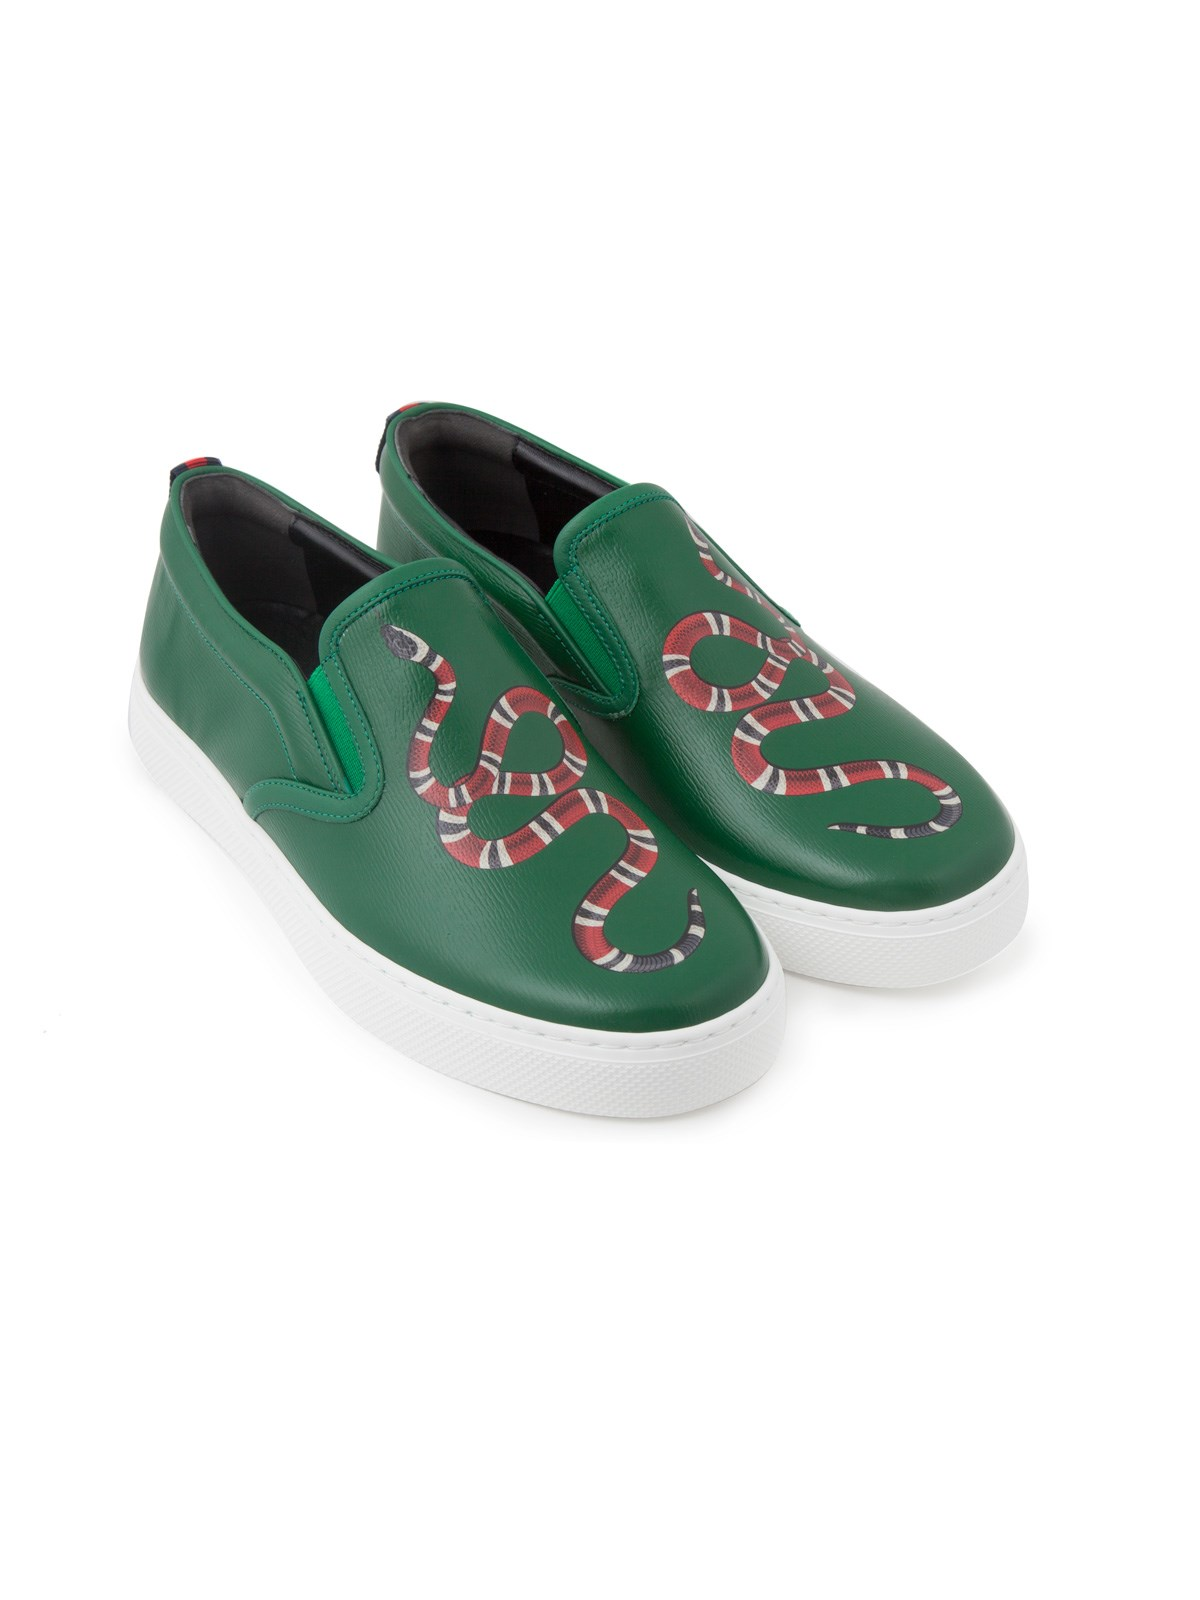 e386a53936be gucci SLIP ON SNEAKERS available on montiboutique.com - 21179